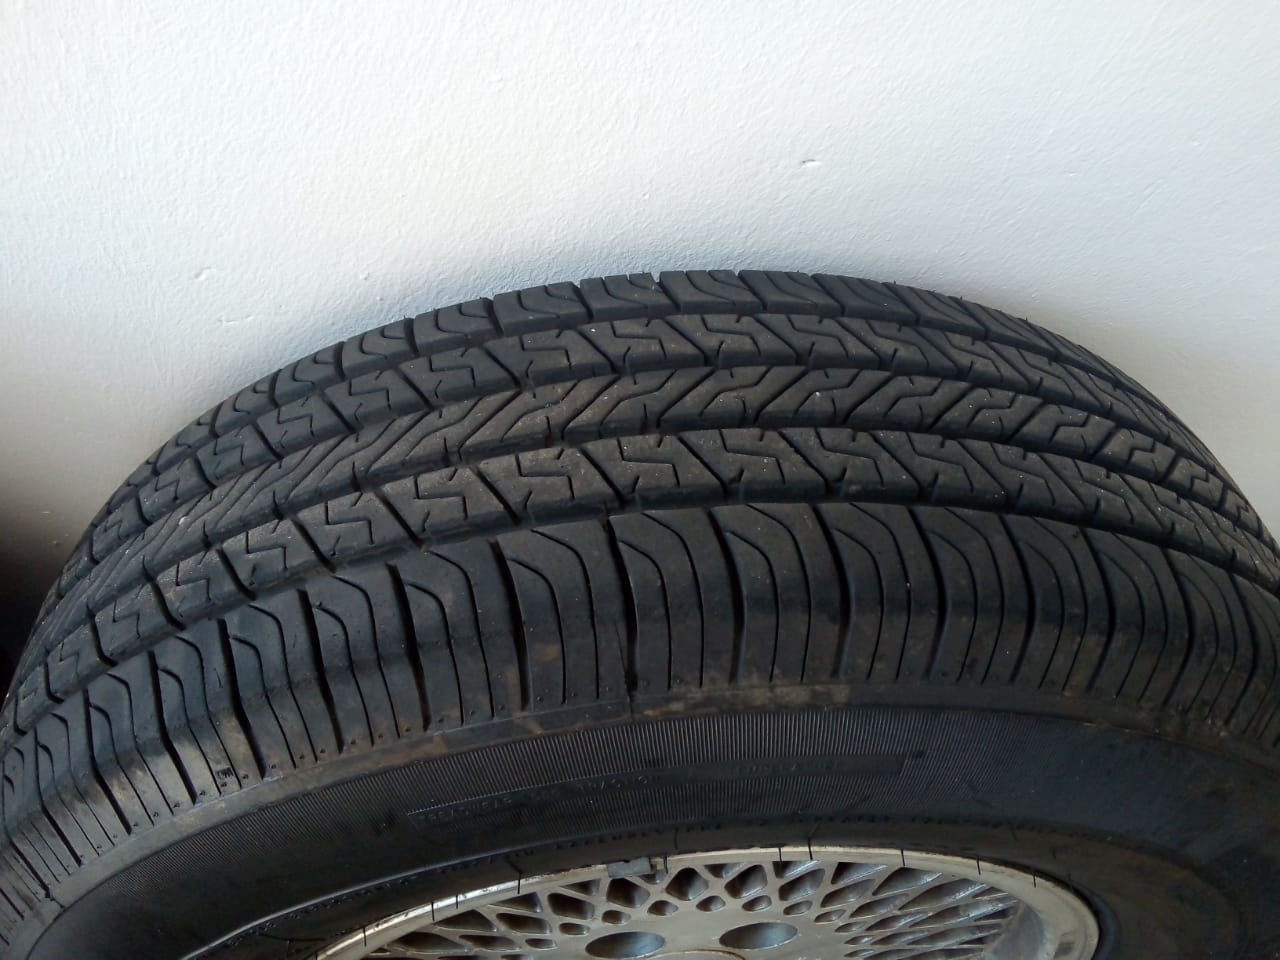 Jeep rims with brand new tyres 215/75/16